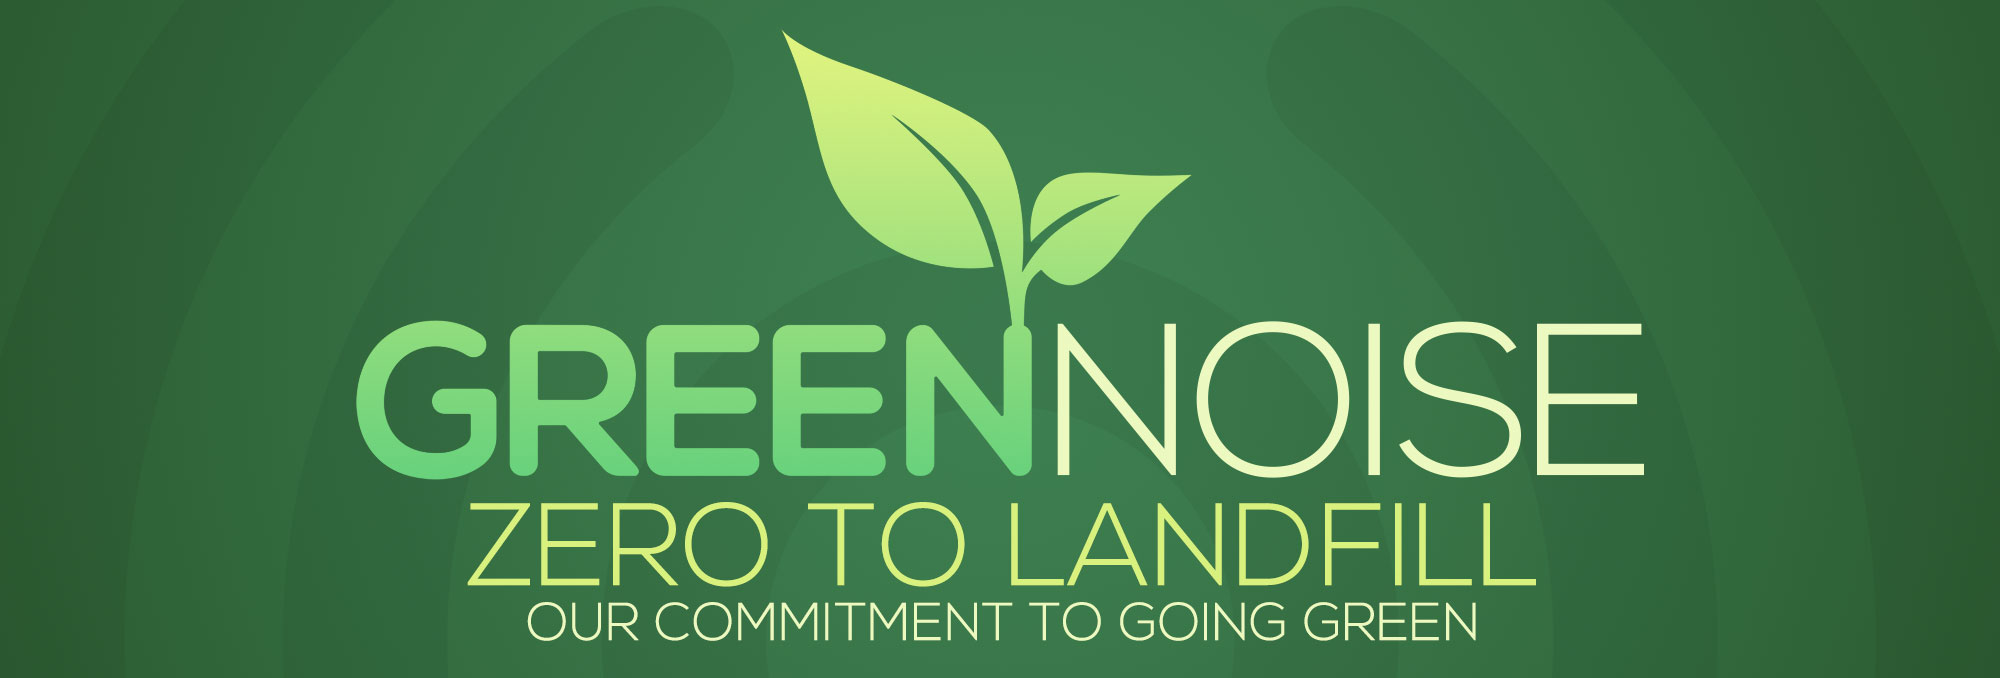 Our Commitment to Going Green!